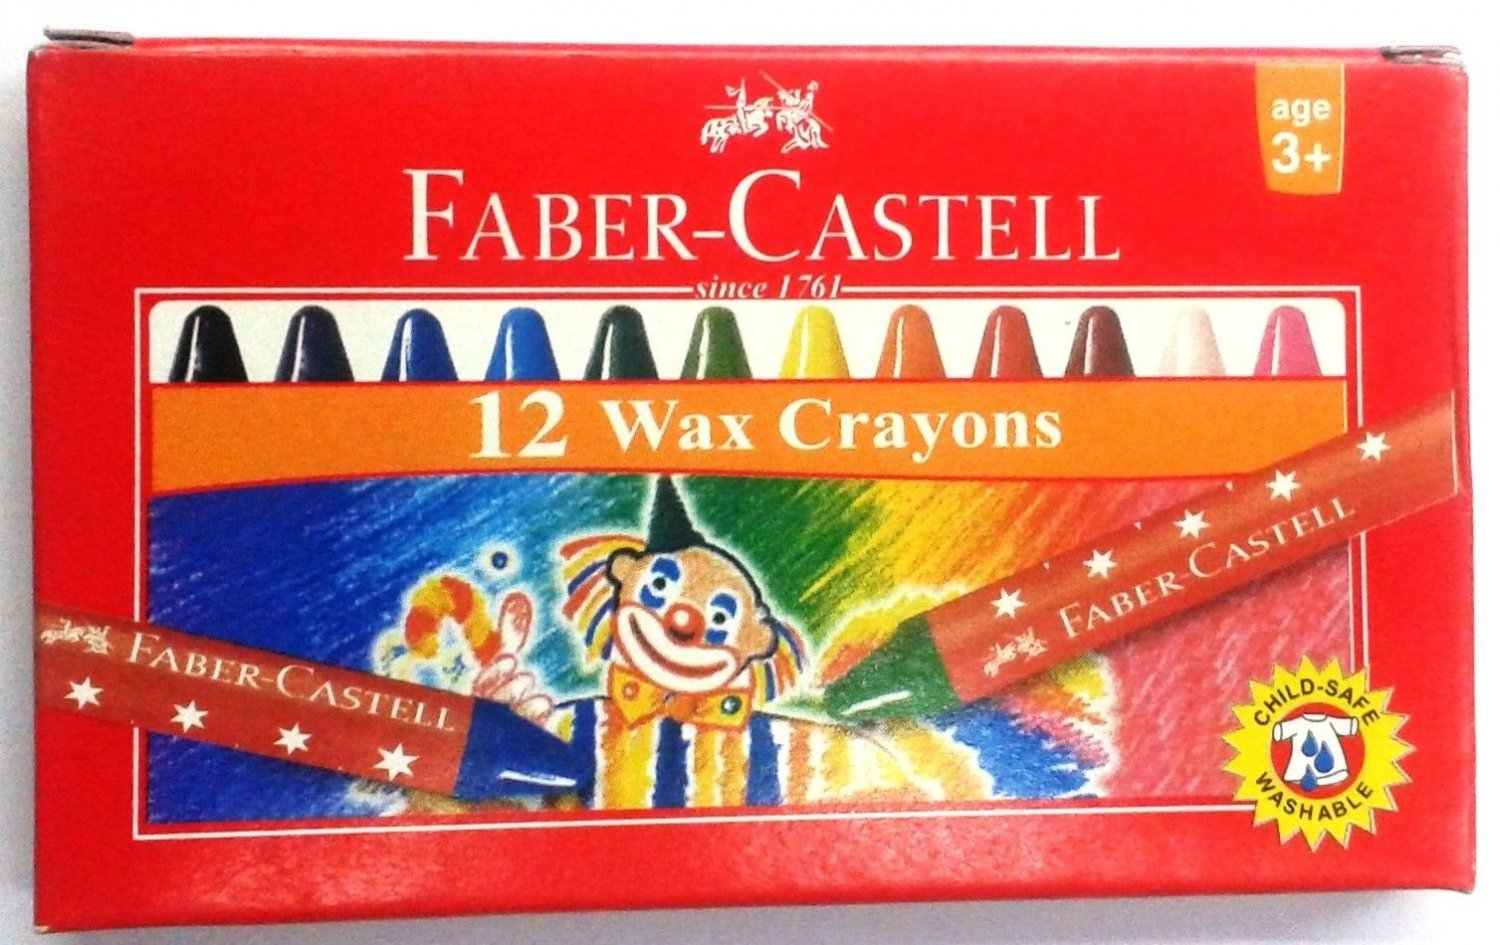 10 X Faber-Castell  12 Wax Crayons  Assorted Shades  57 mm each